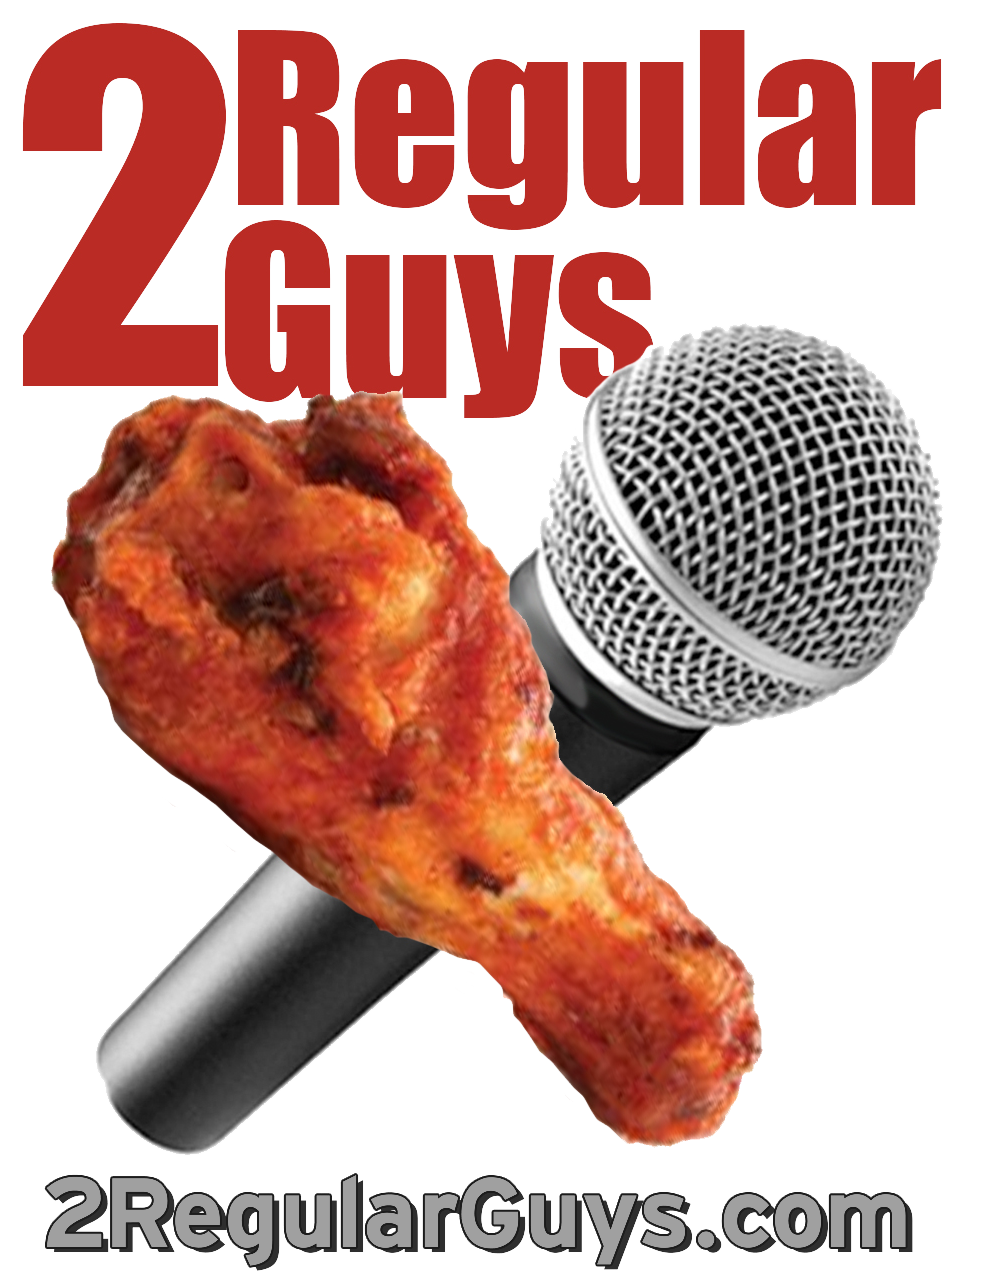 2 Regular Guys Logo